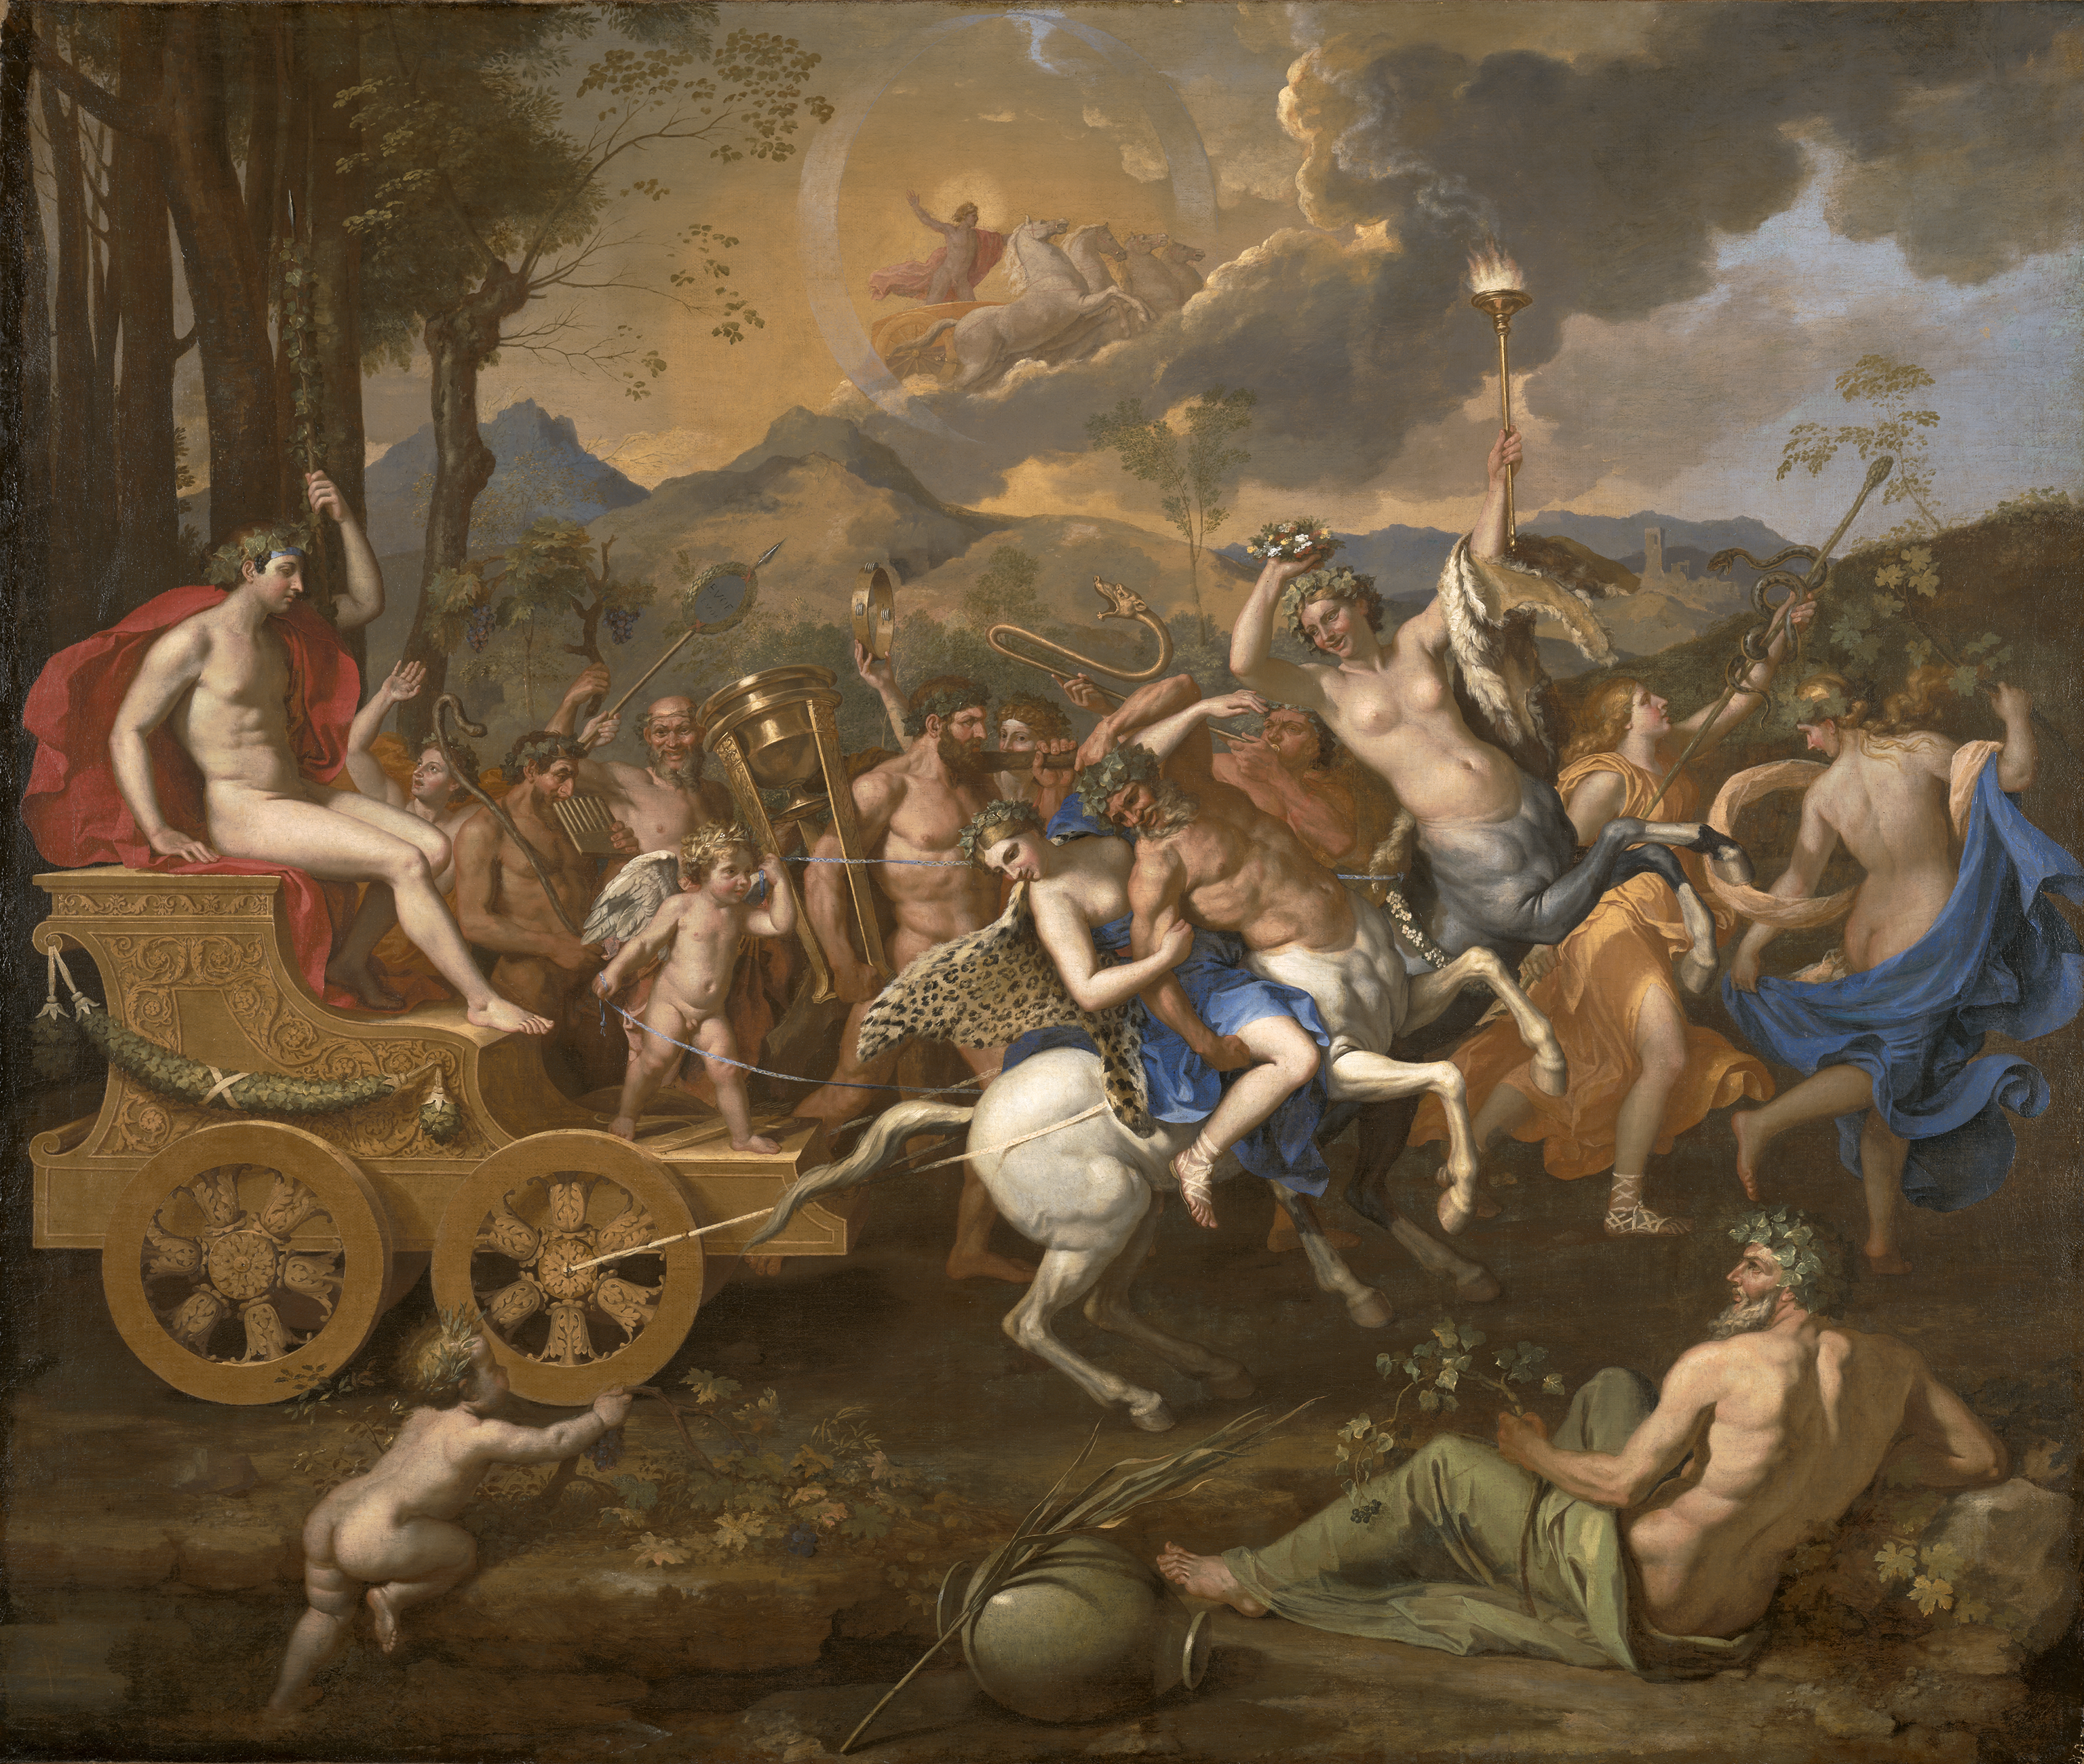 Bacchus on a chariot drawn by centaurs. Behind is a procession in front of mountains, Apollo drives across the sky. A man and child rest in front.